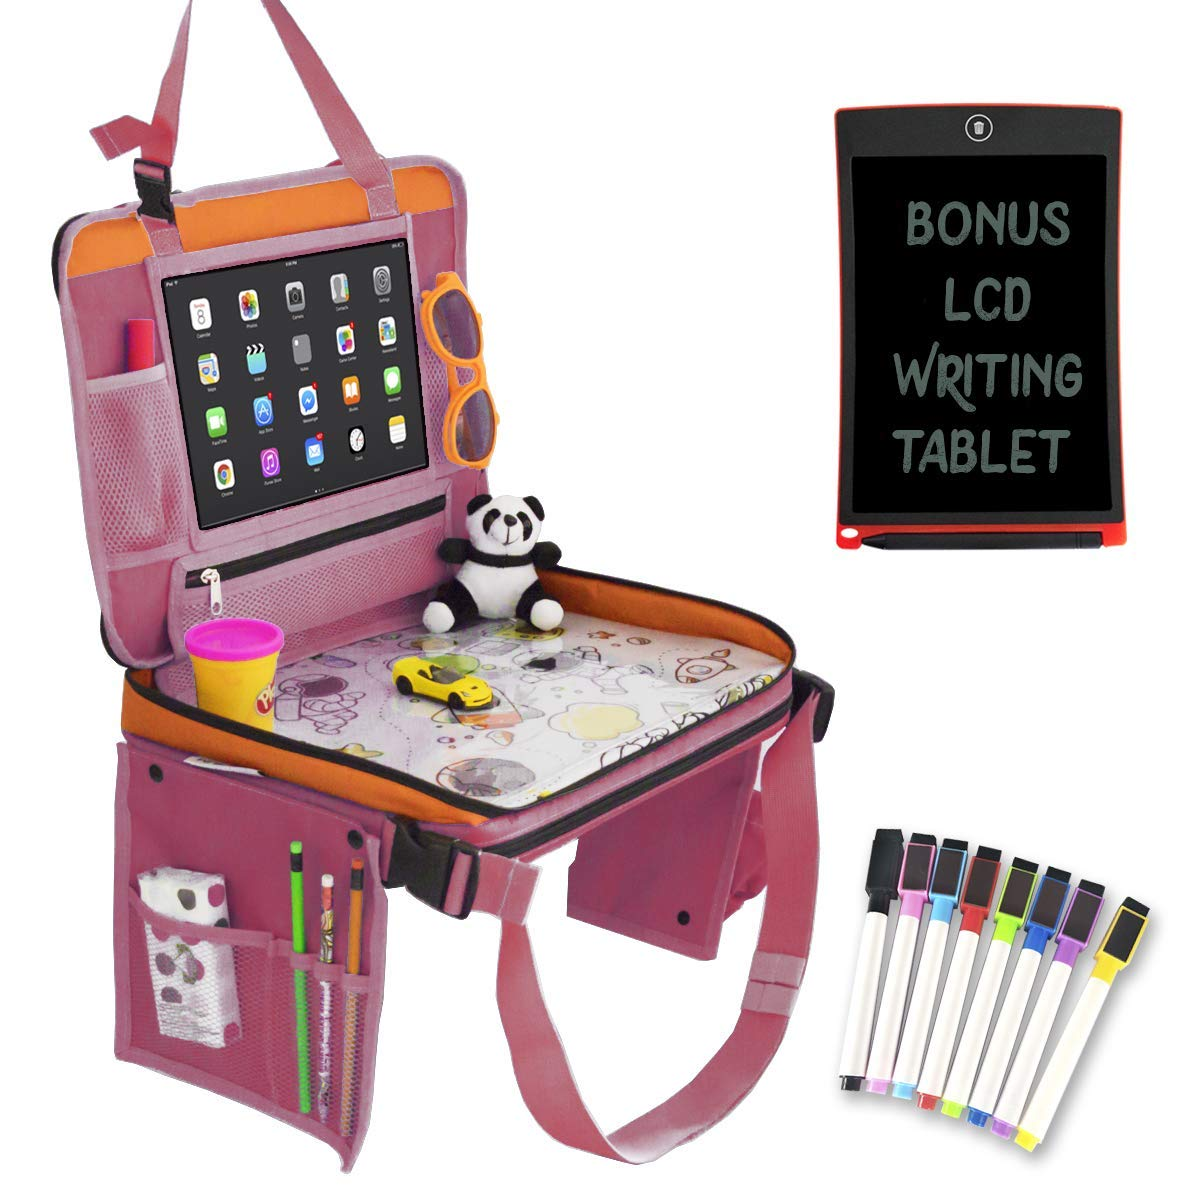 Car Seat Organizer for Kids Travel Tray Bundle with LCD Writing Tablet - Kids Travel Activities Set | Car Seat Organizer with Tablet Holder, Kids Travel Bag, LCD Writing Tablet, Markers Set (Pink) by Gleemium